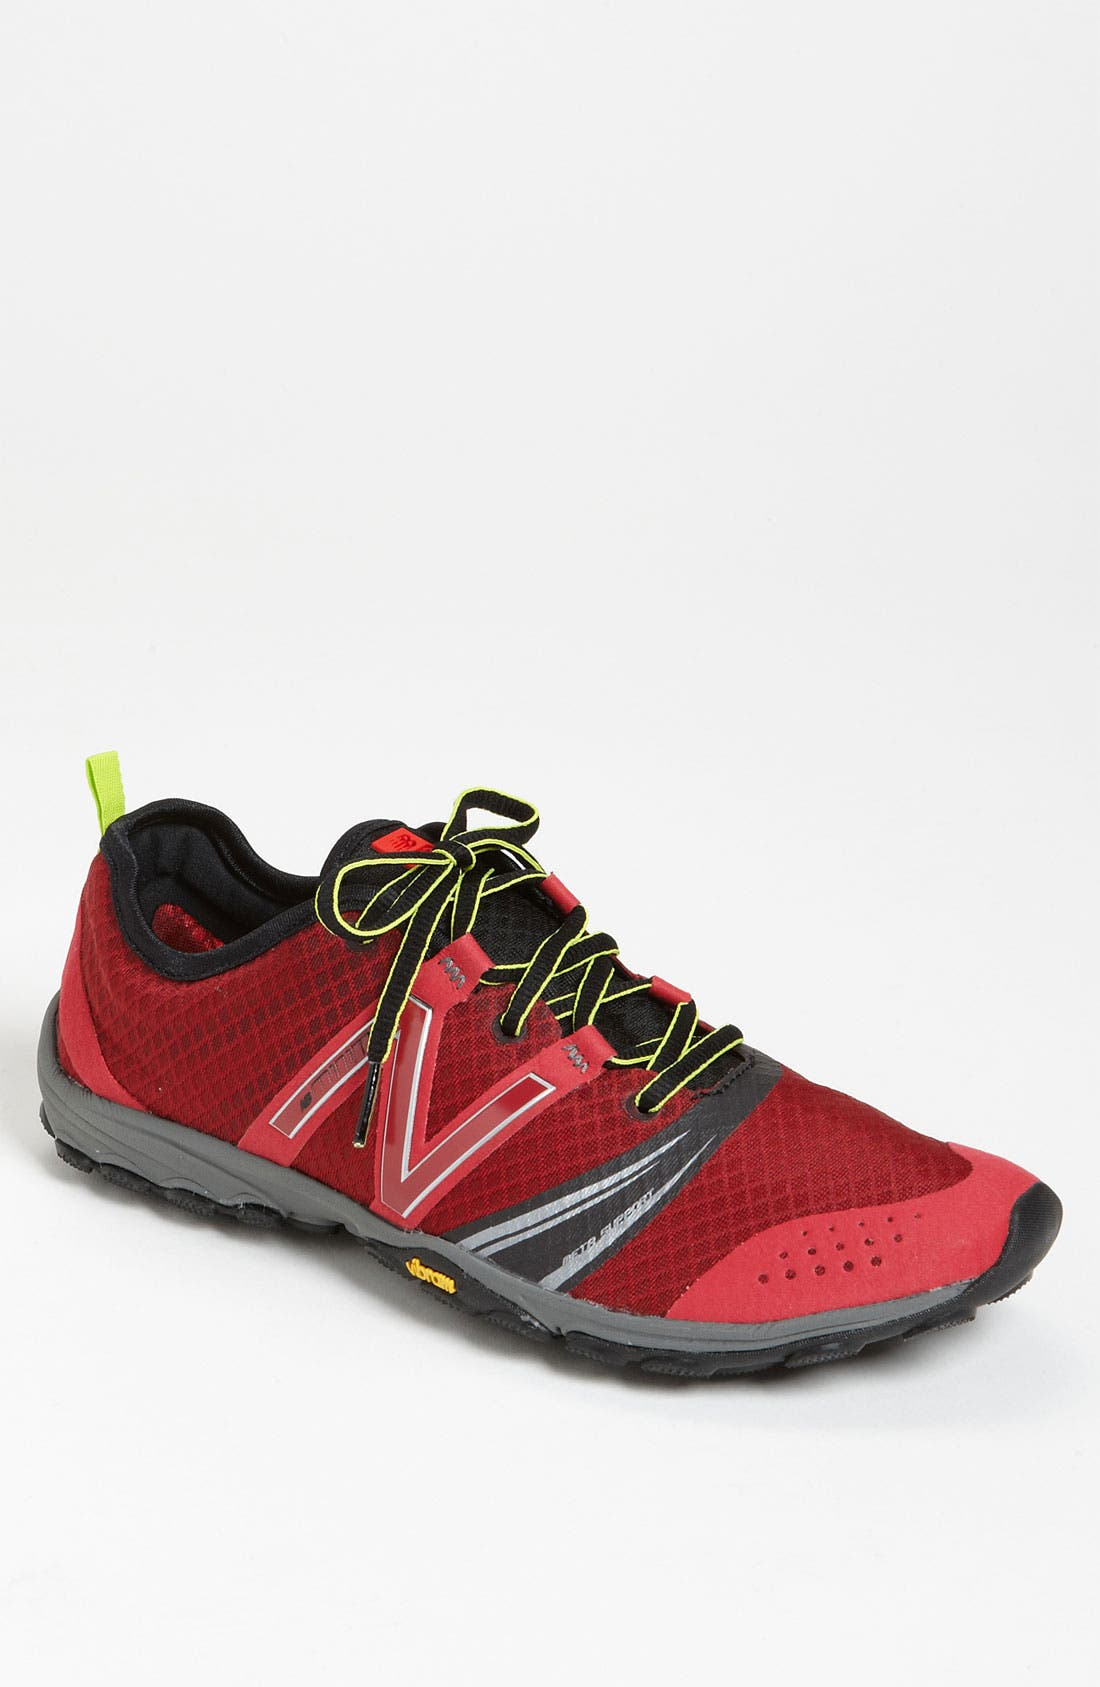 Alternate Image 1 Selected - New Balance 'Minimus' Trail Running Shoe (Men)